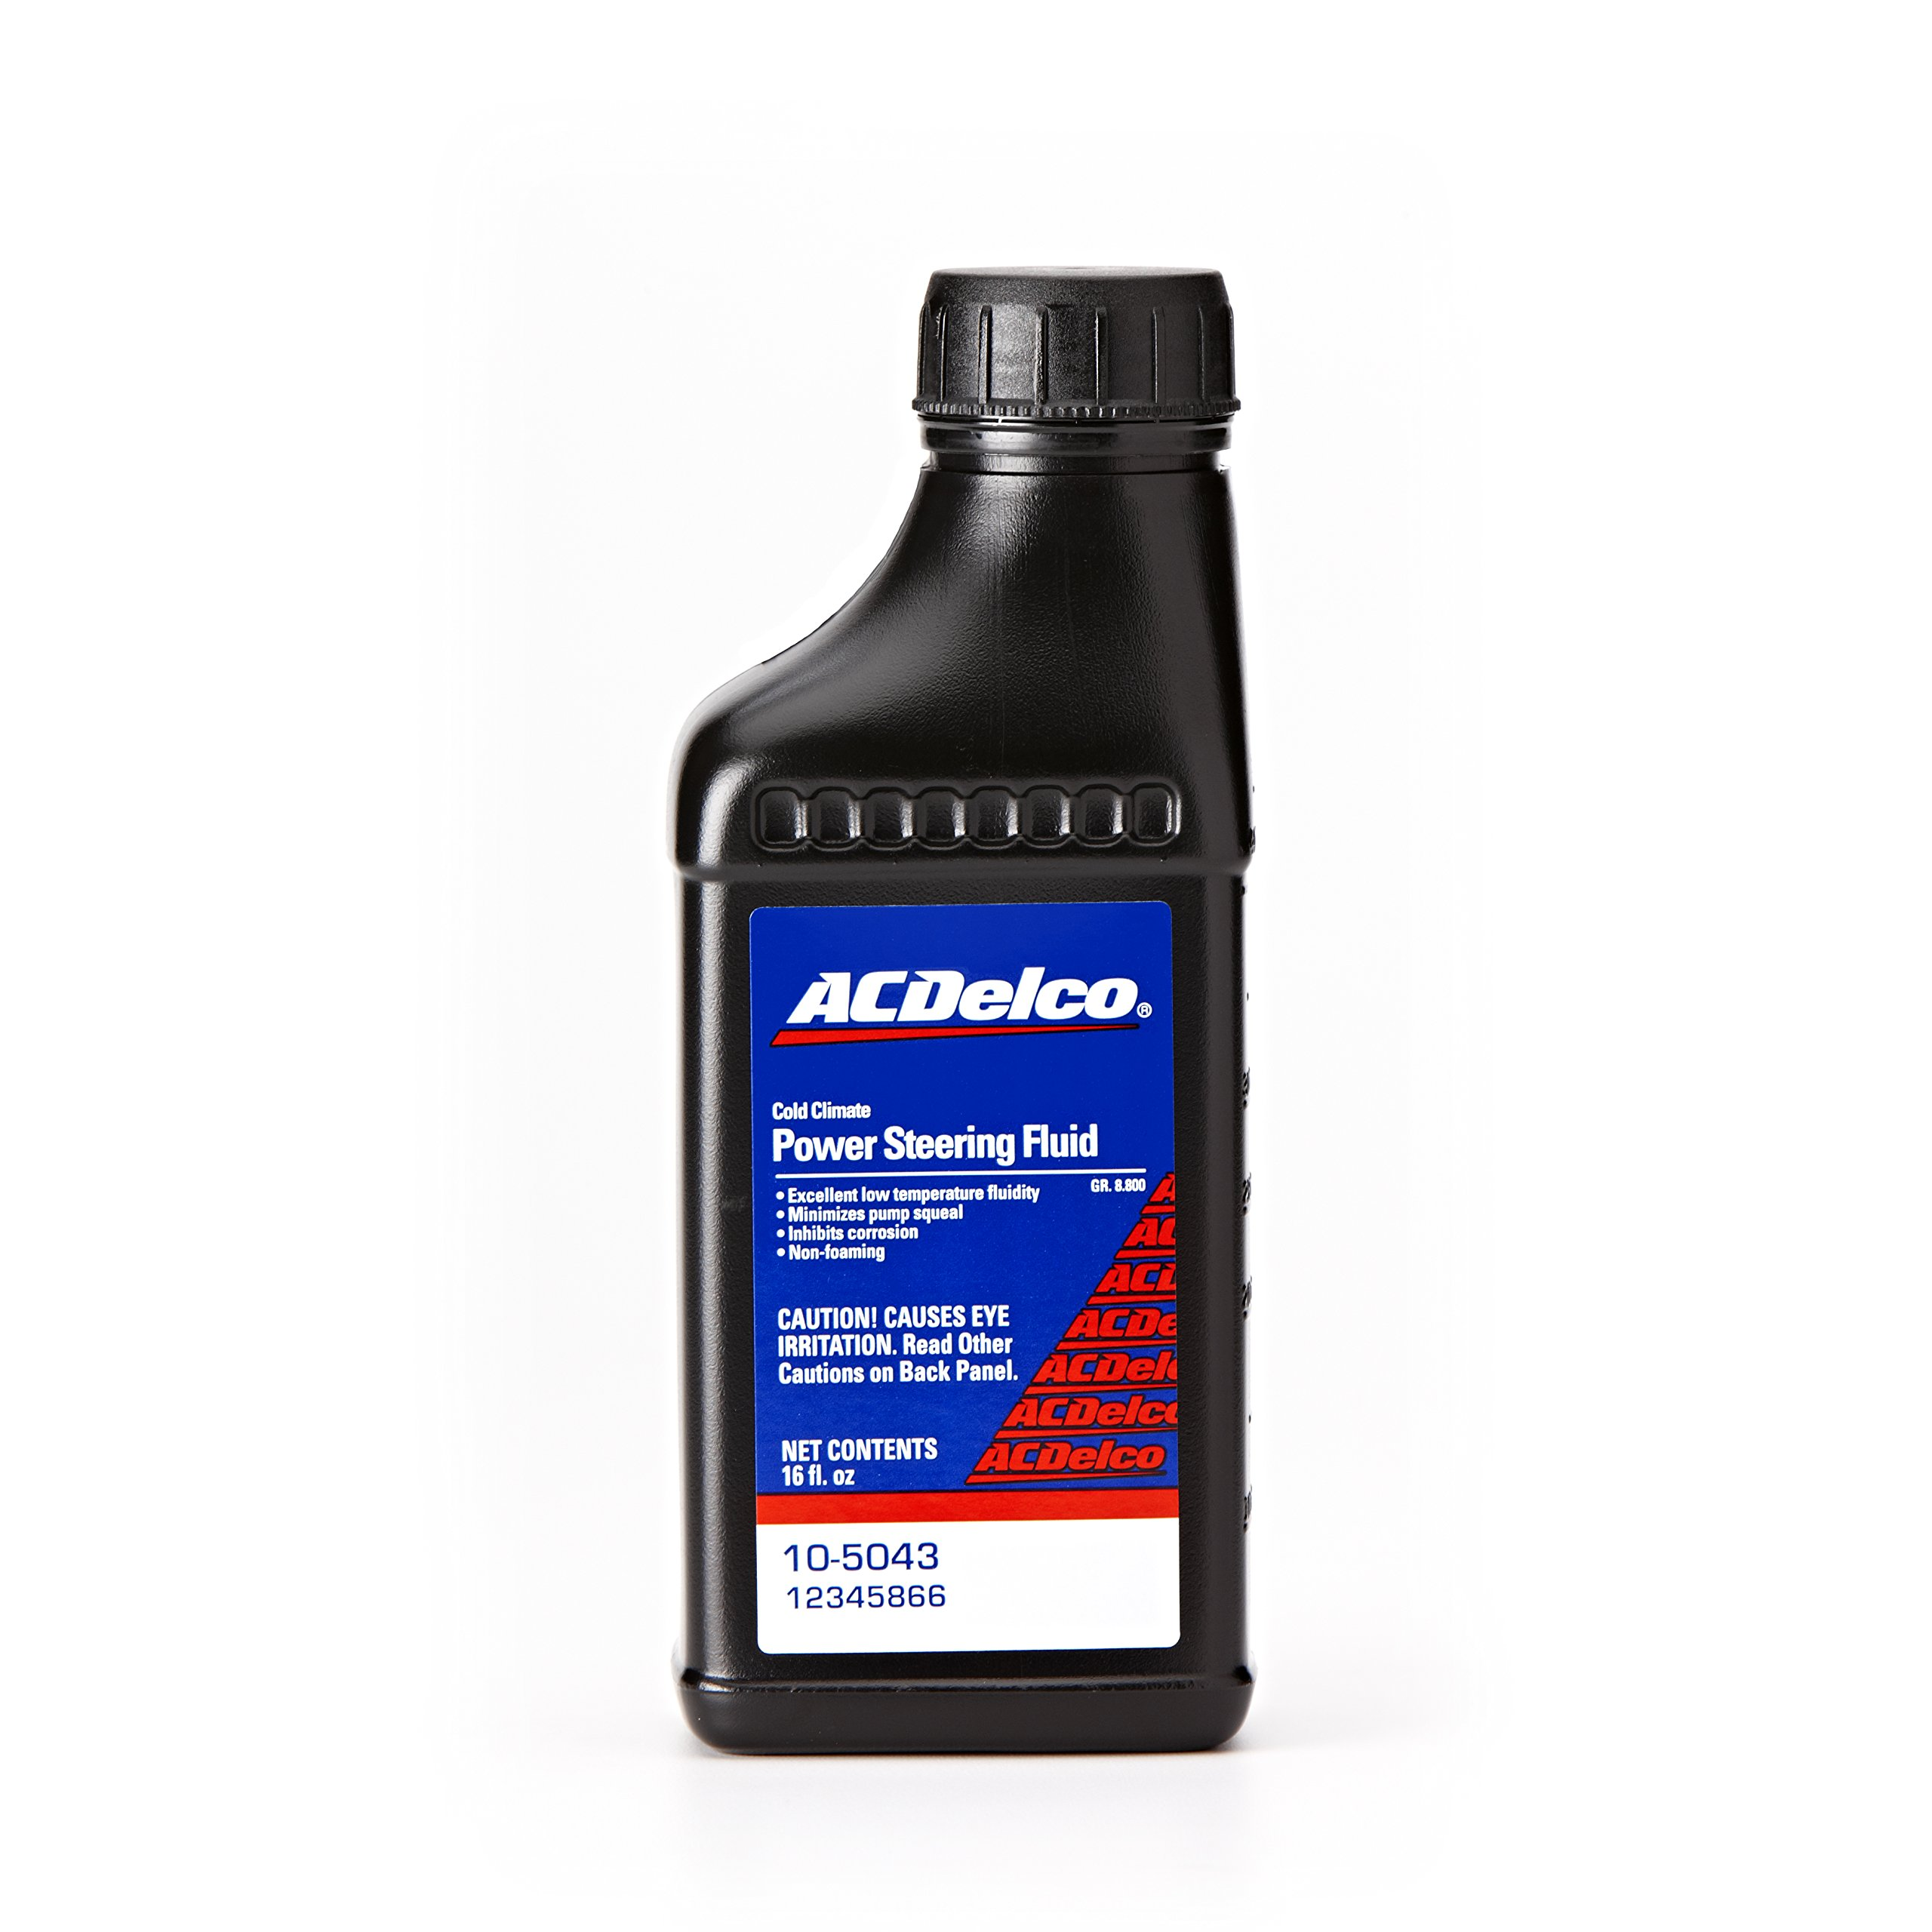 ACDelco 10-5043 Cold Climate Power Steering Fluid - 16 oz by ACDelco